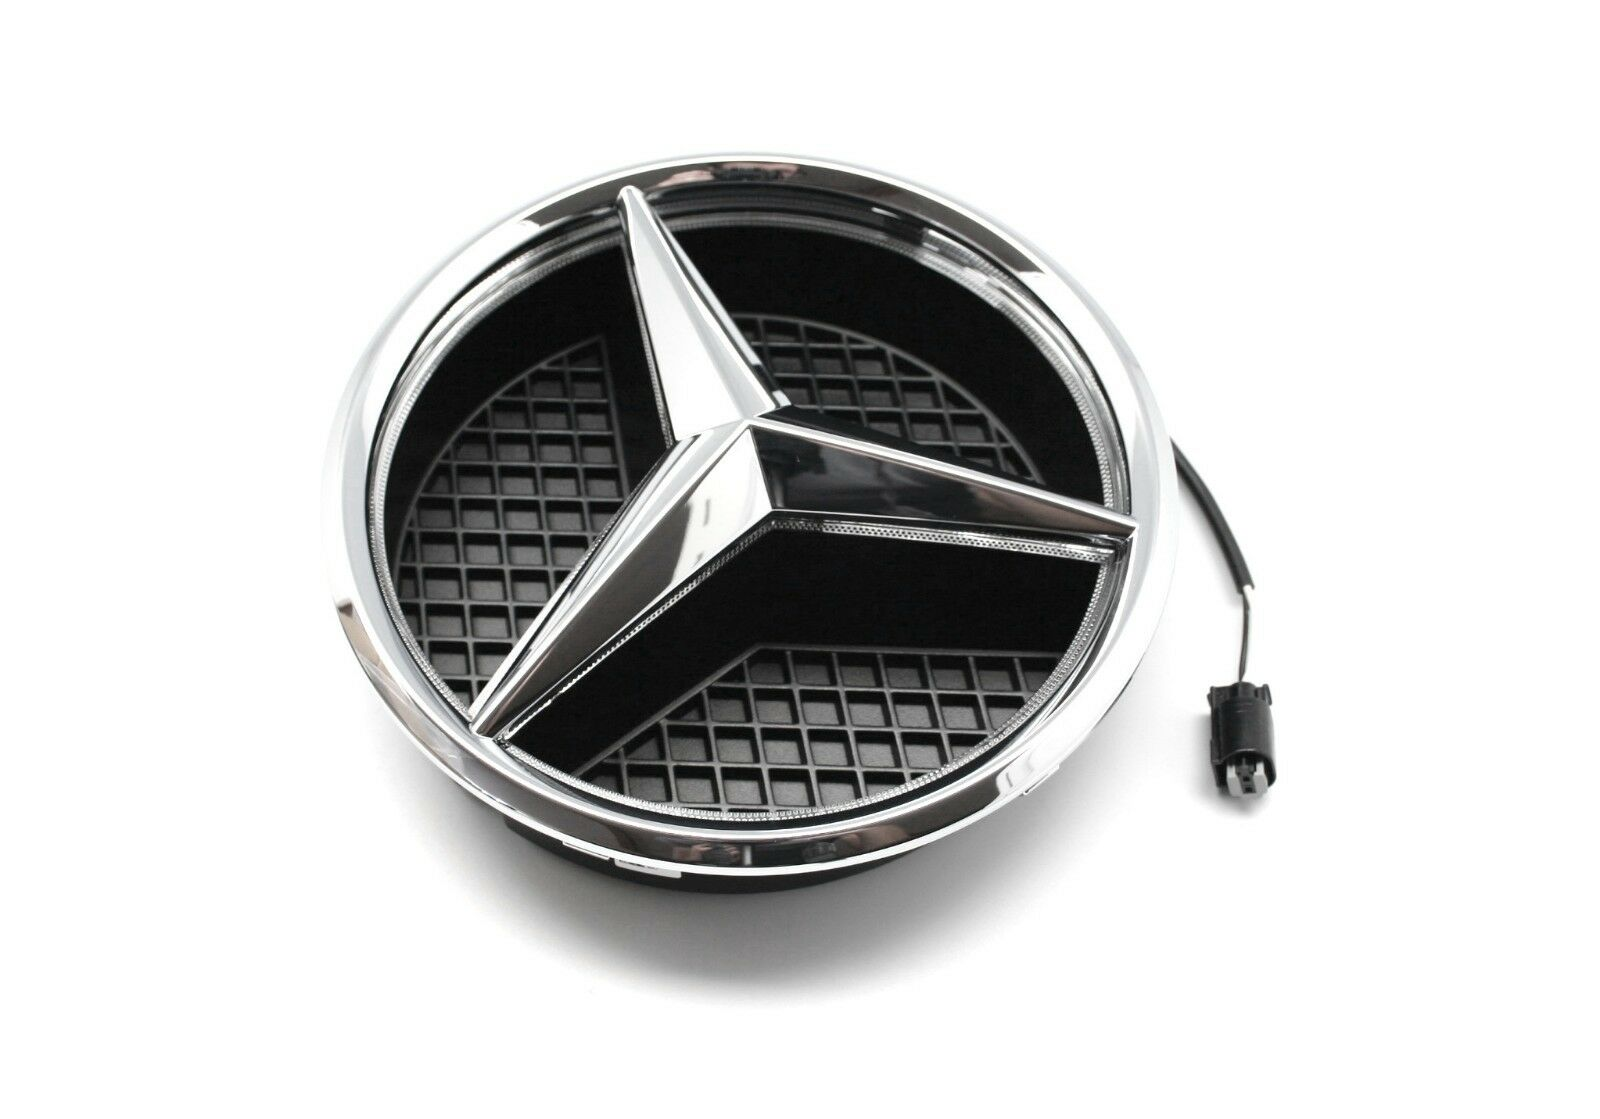 Details About Mercedes Benz Genuine Oem Illuminated Star Emblem Only Cla Gla B Class